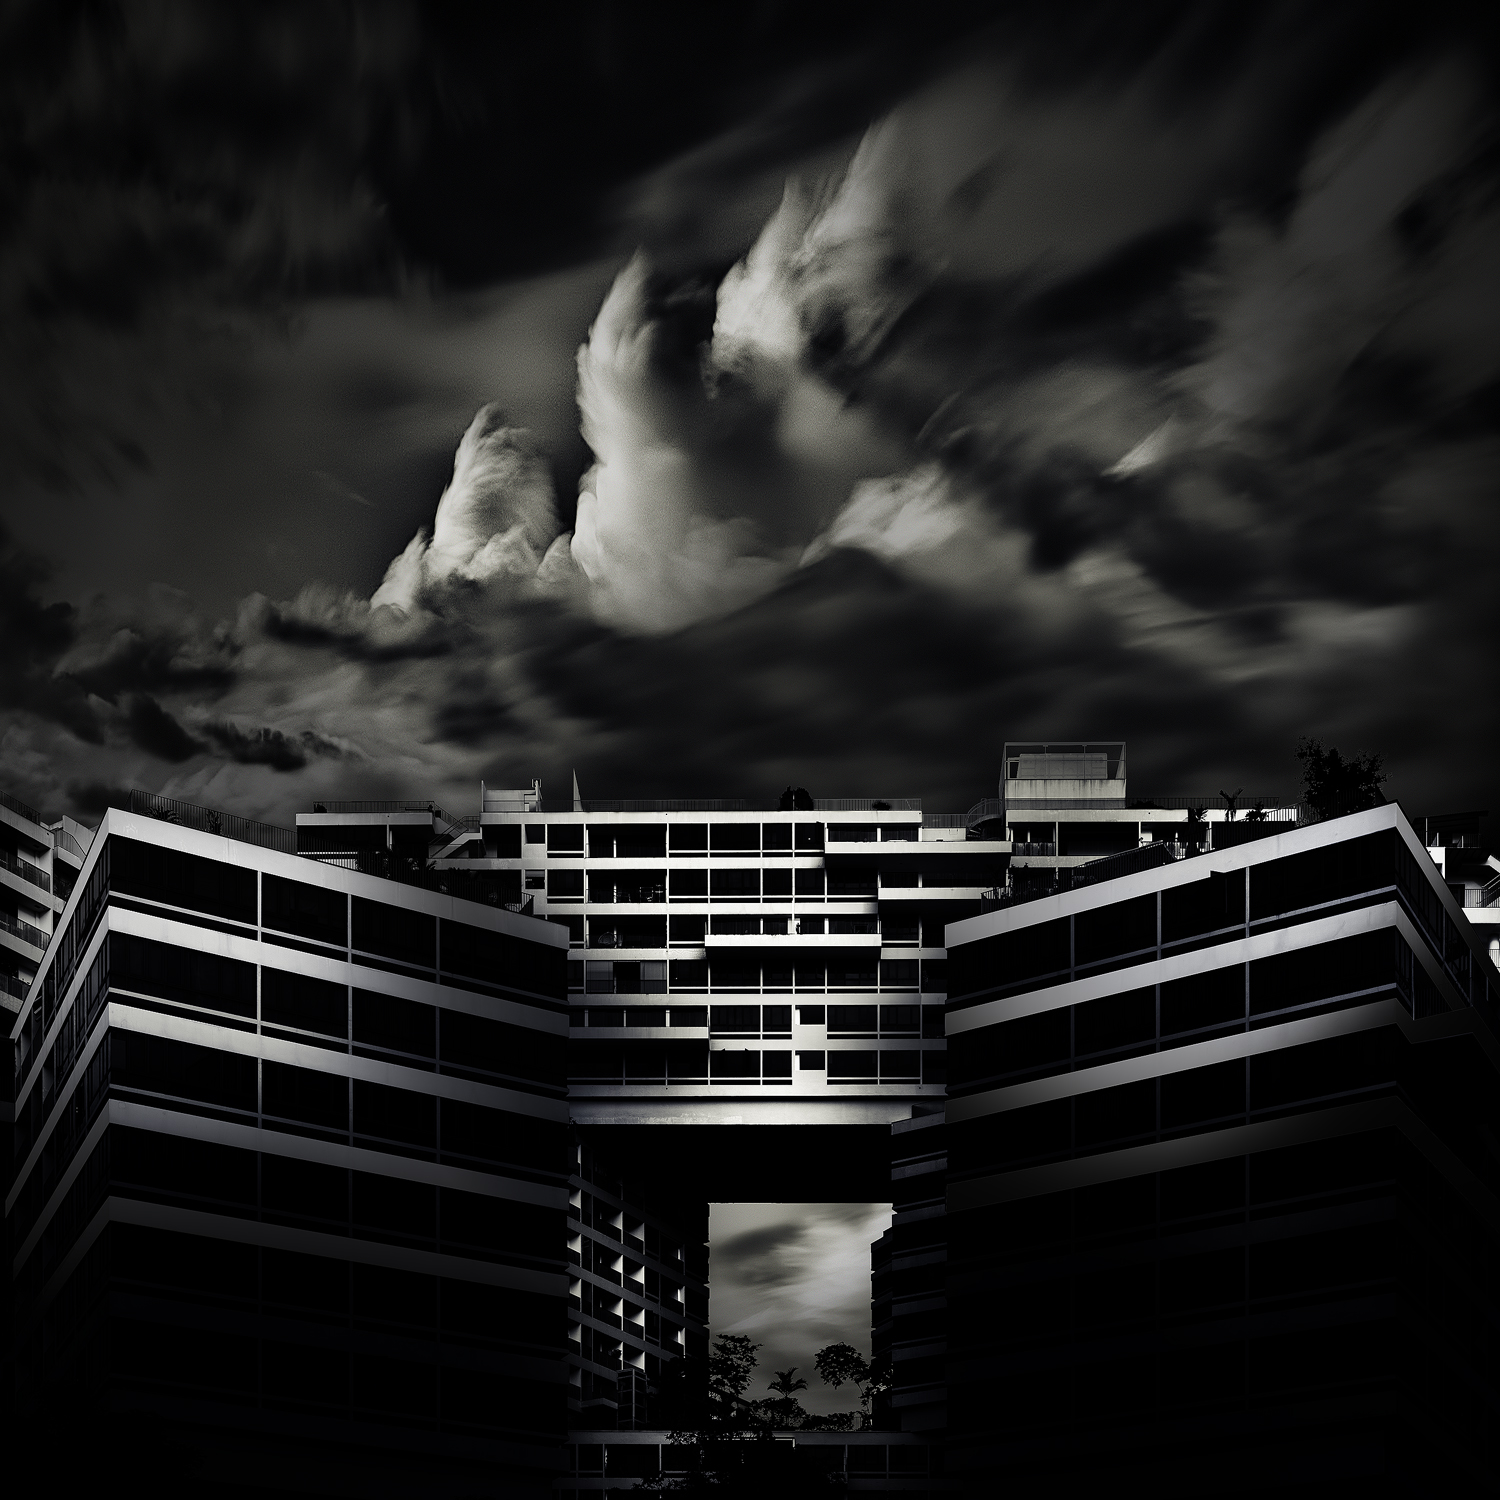 The Interlace II, One of the category winners of American Photographic Awards 2017.